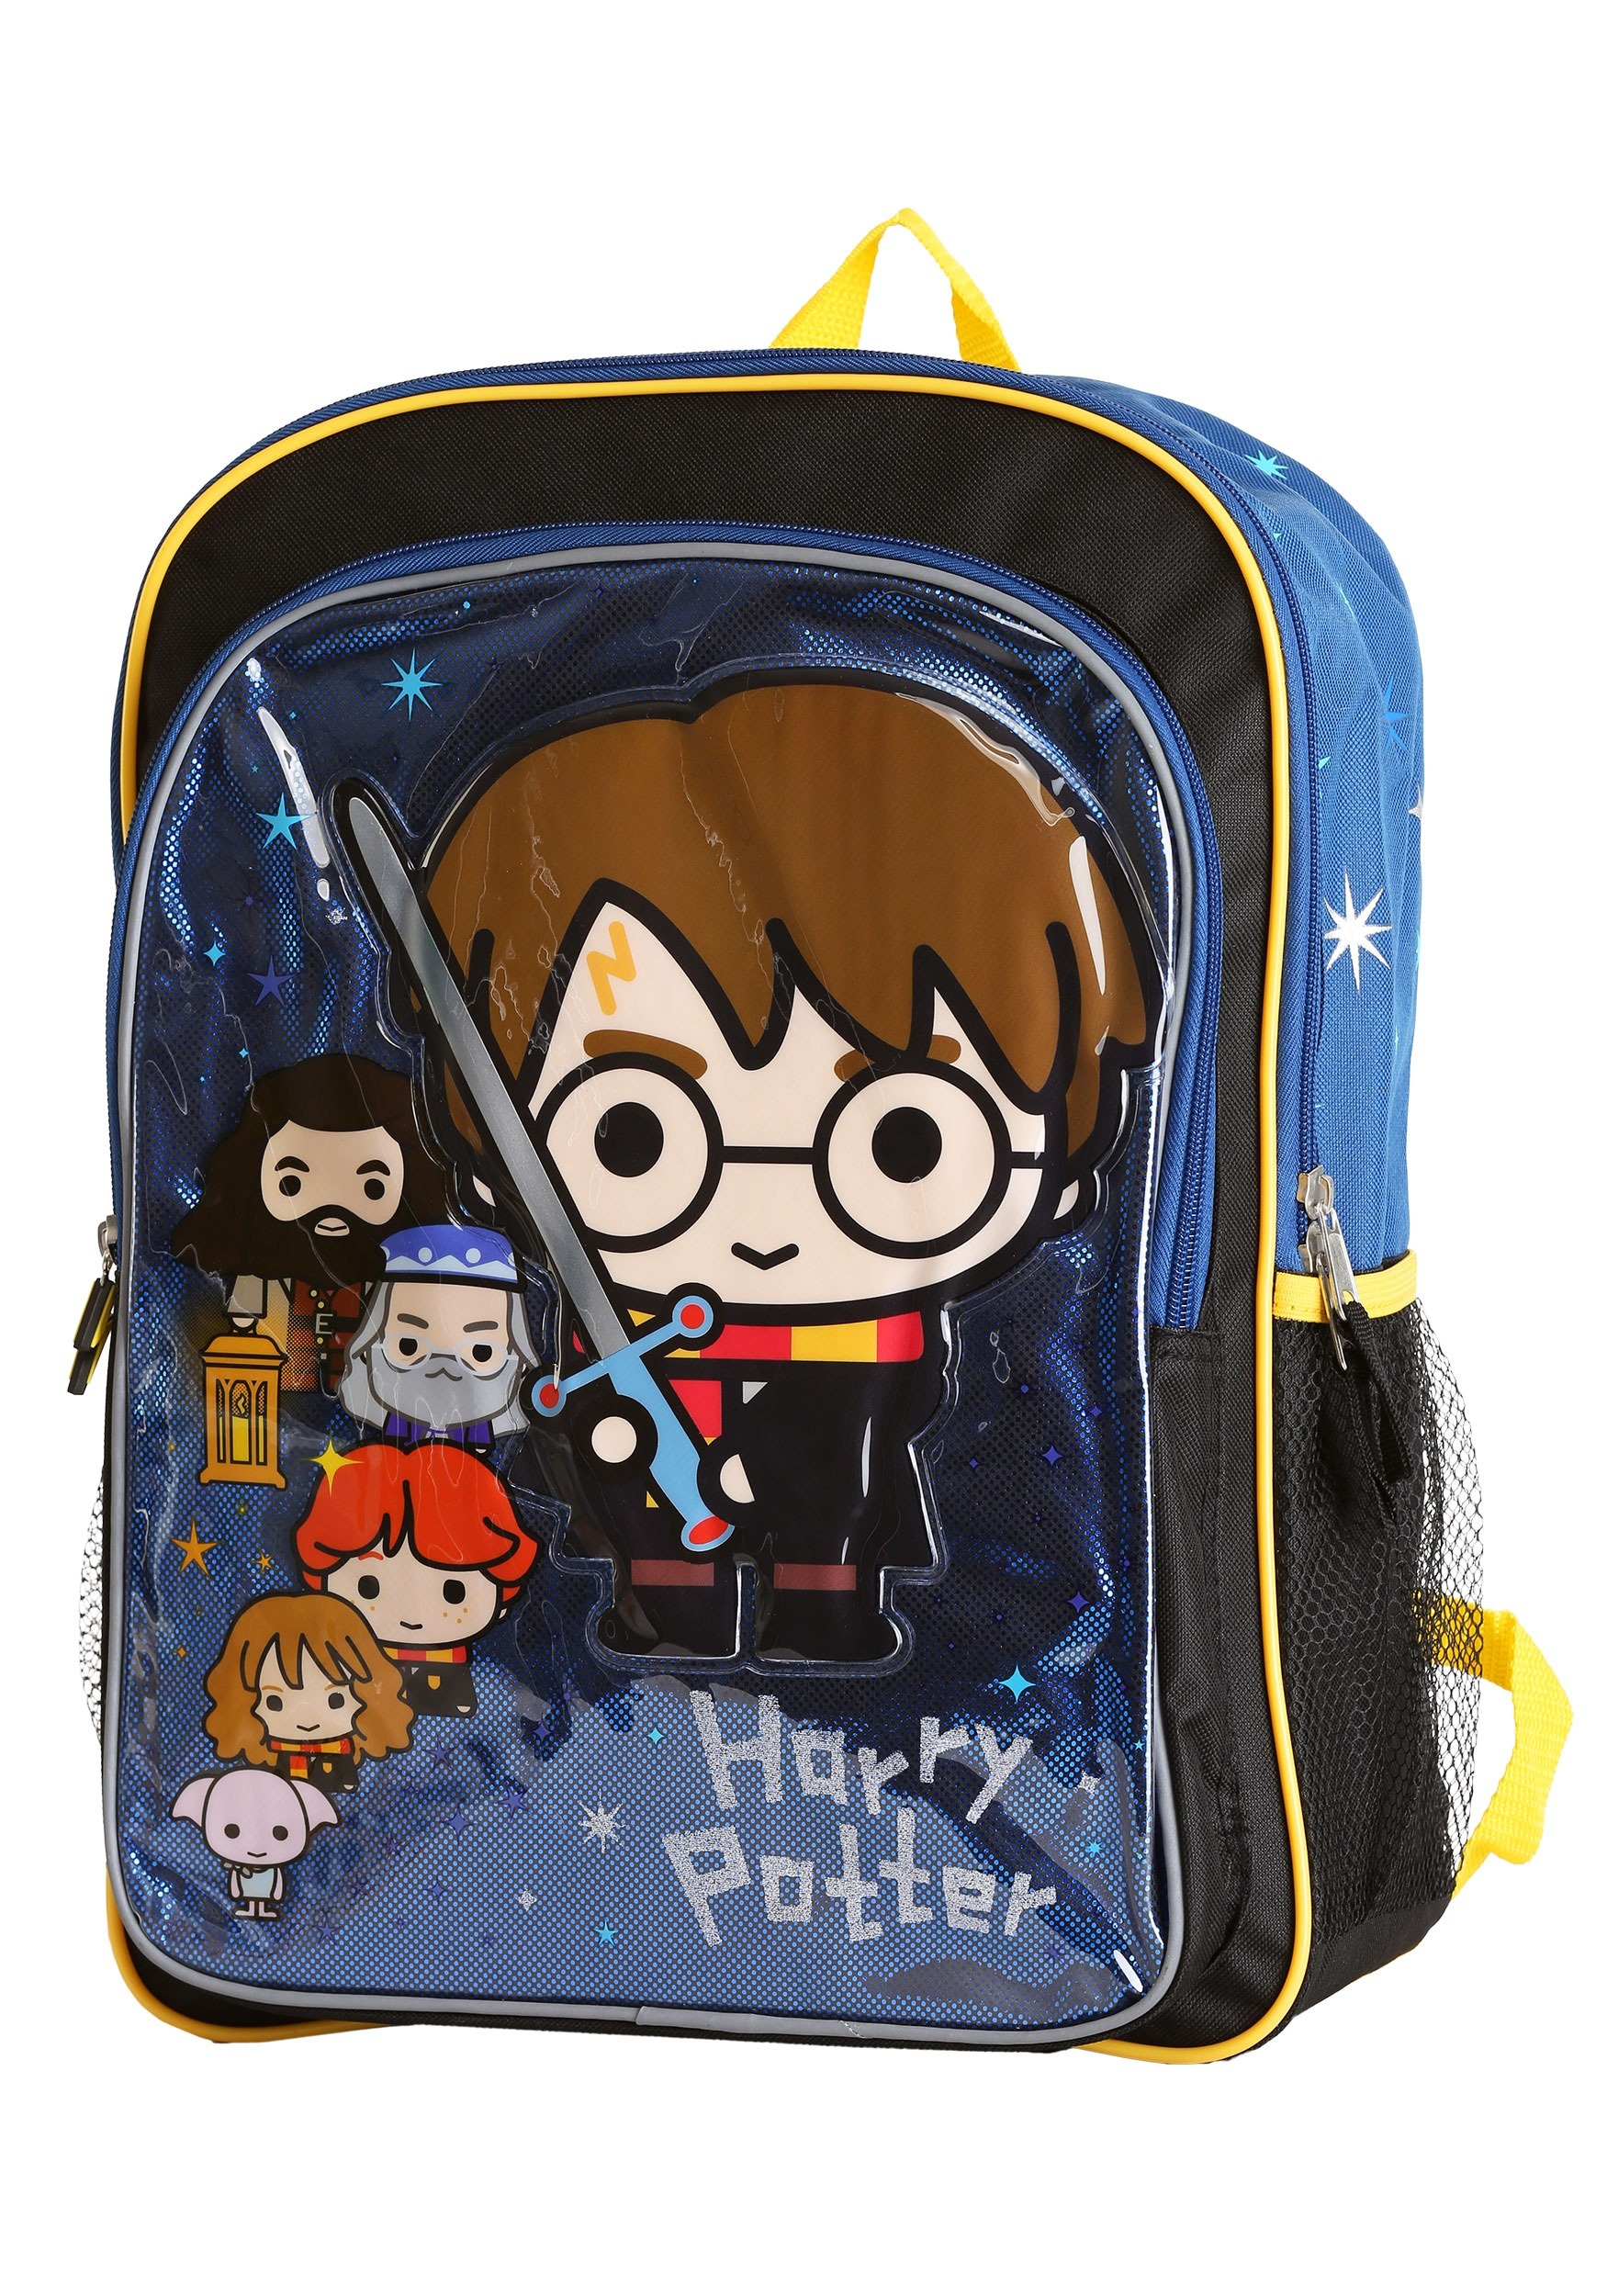 "Kids_Harry_Potter_Chibi_16""_Backpack"